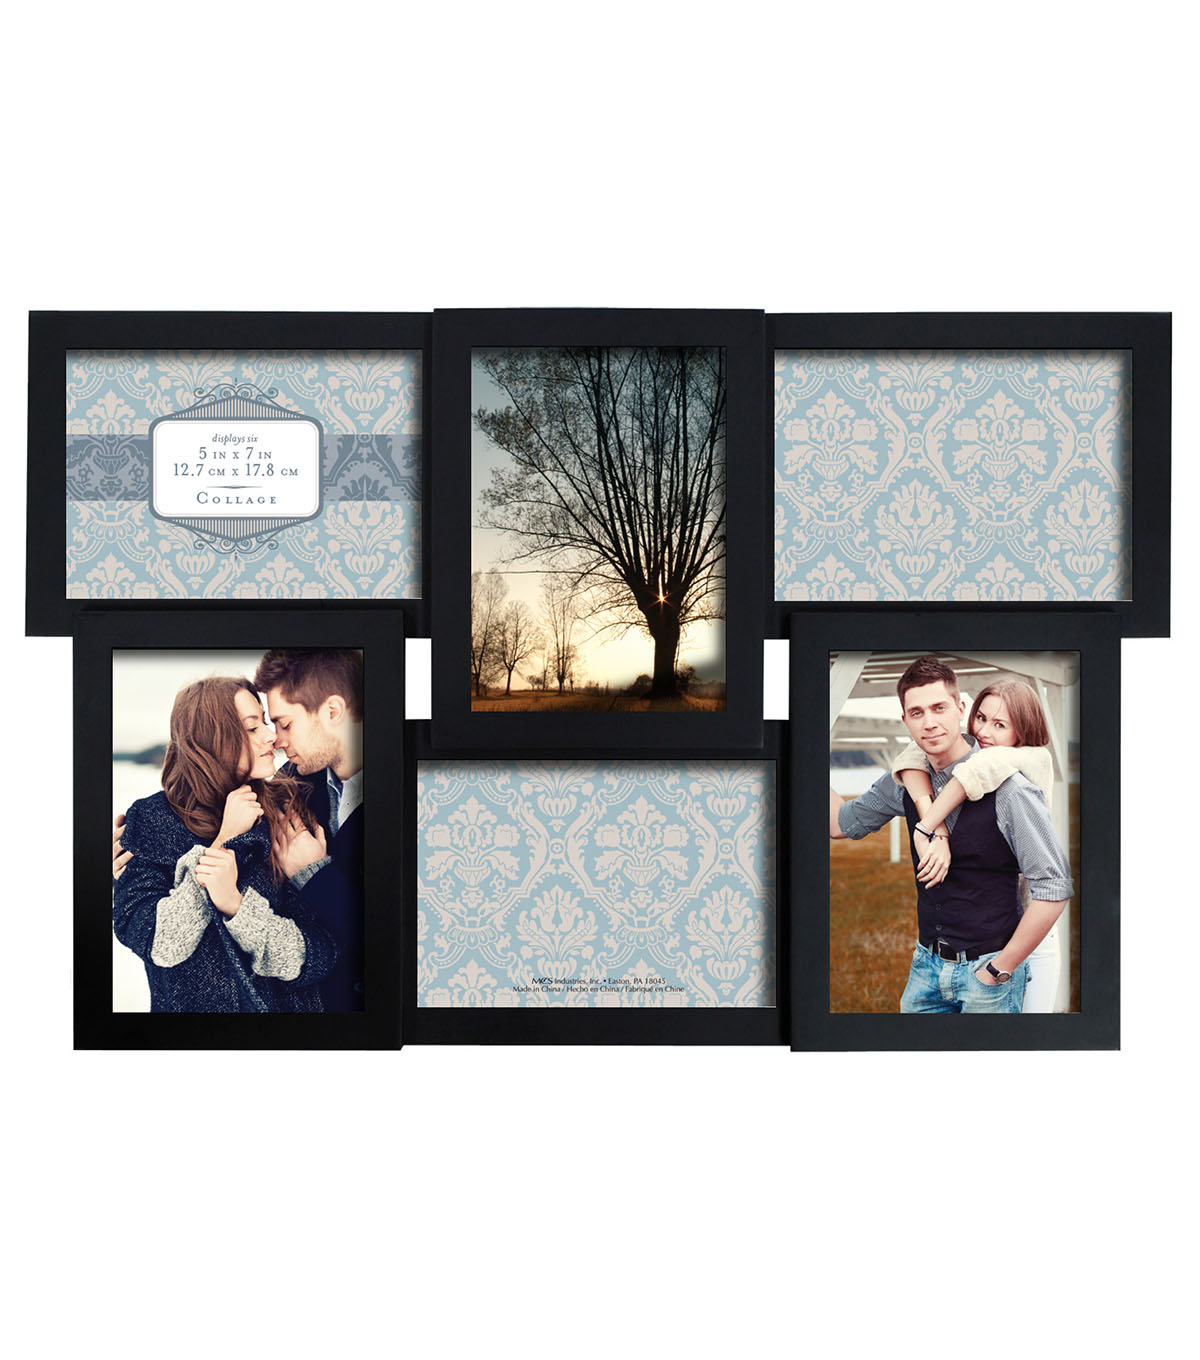 Collage Wall Frame 6 5X7 Openings-Dimensional Black